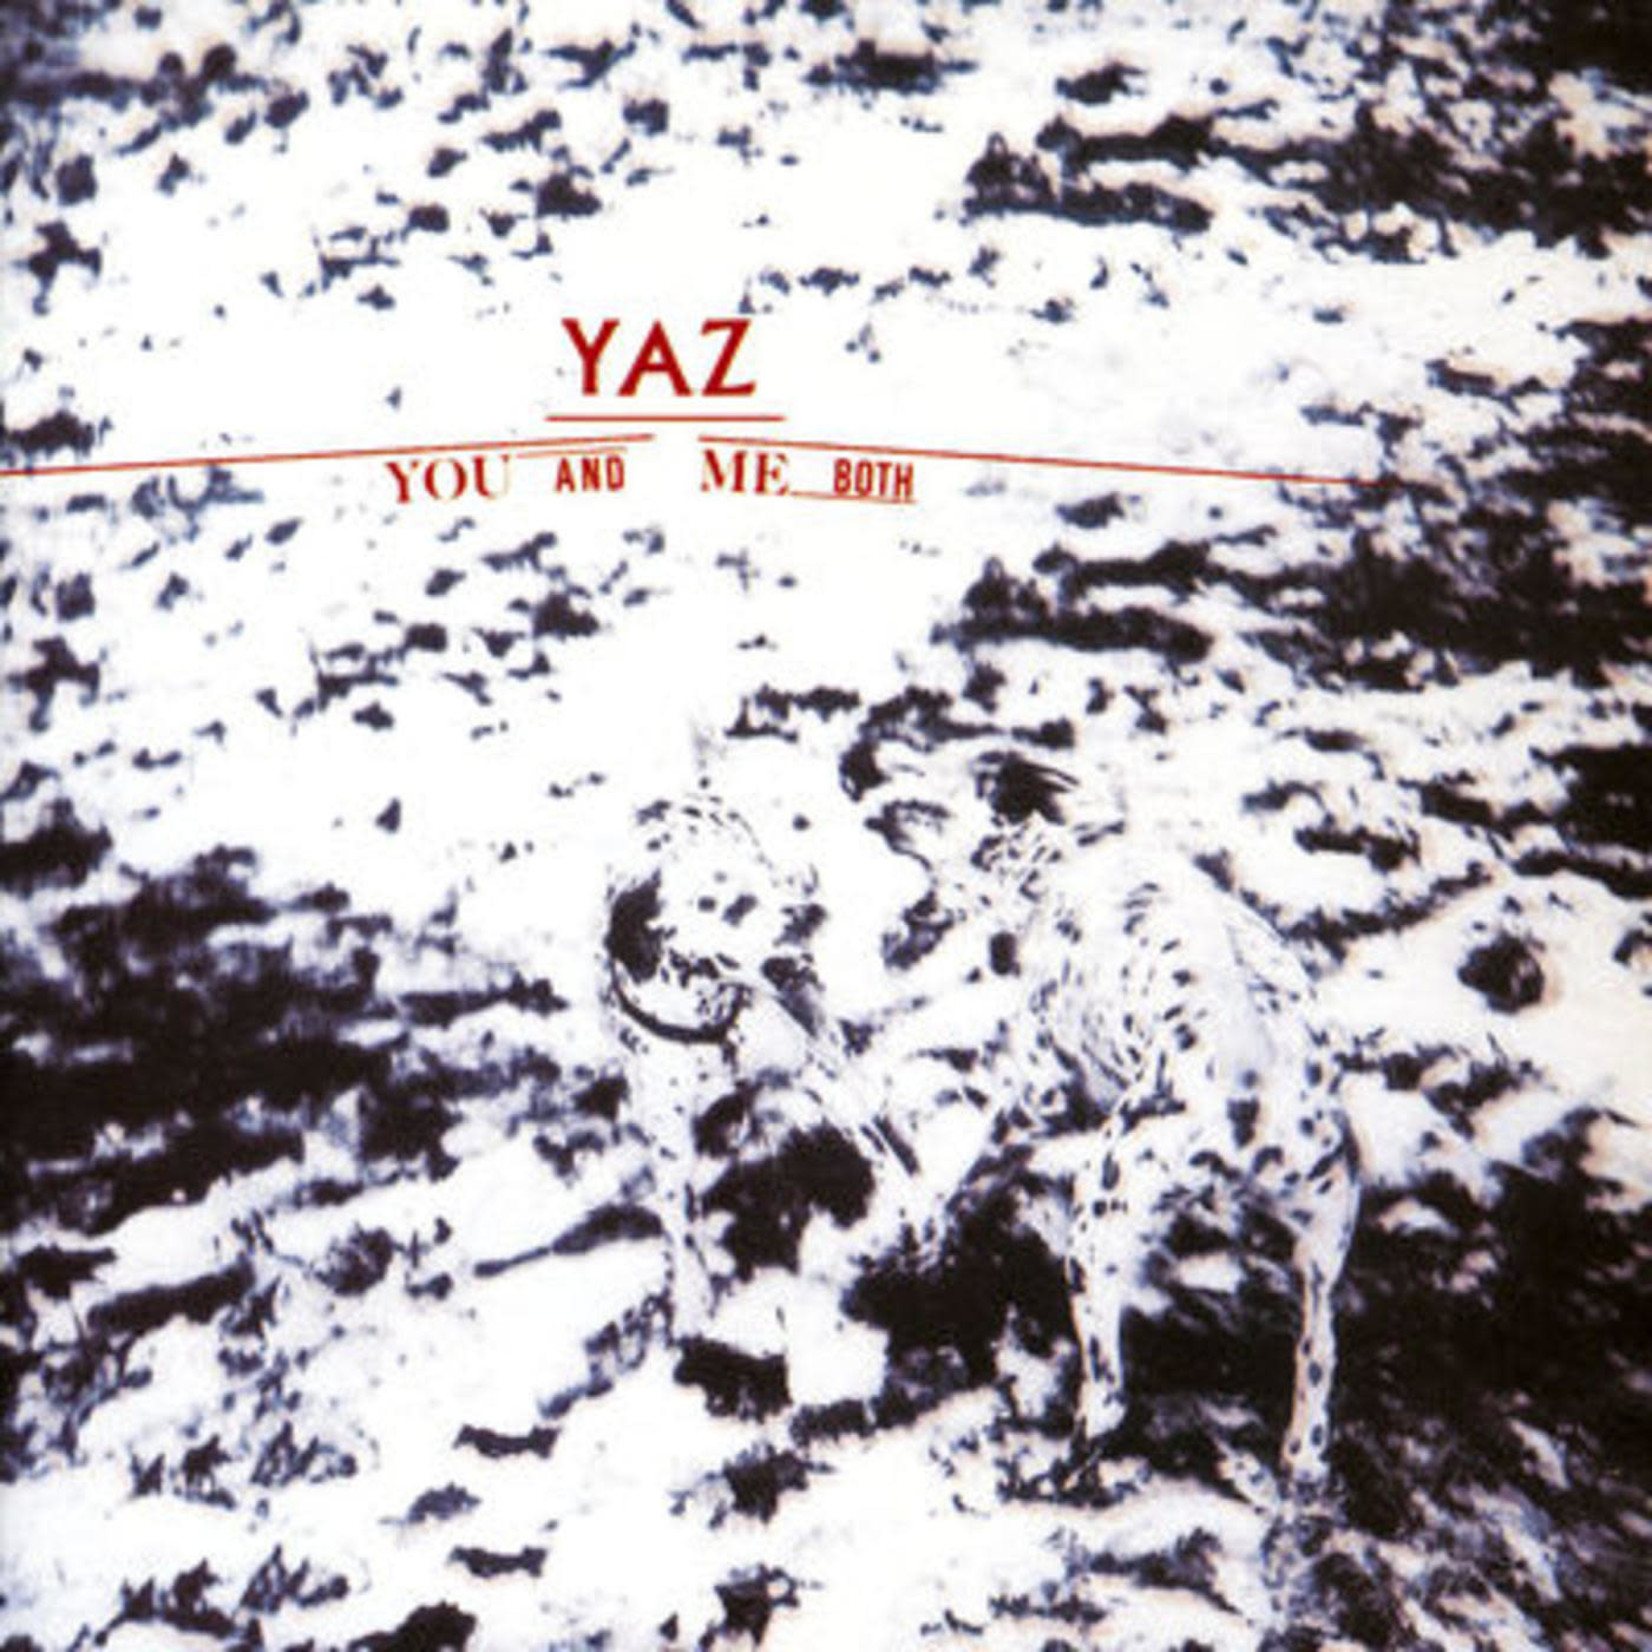 [Vintage] Yaz: You and Me Both